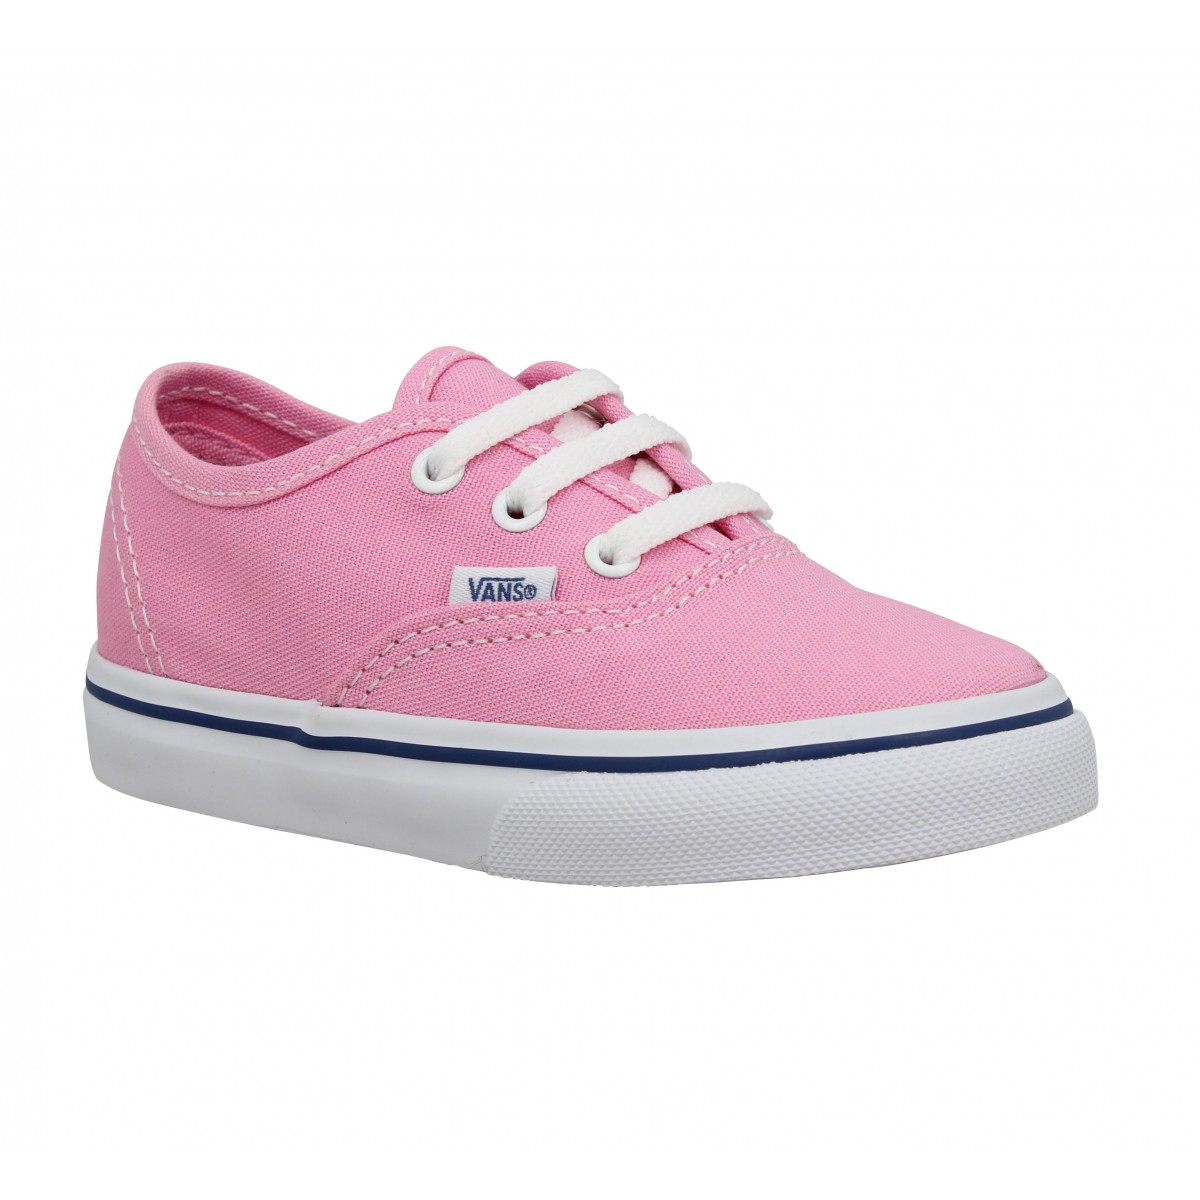 Vans Enfant Authentic Toile -30-rose